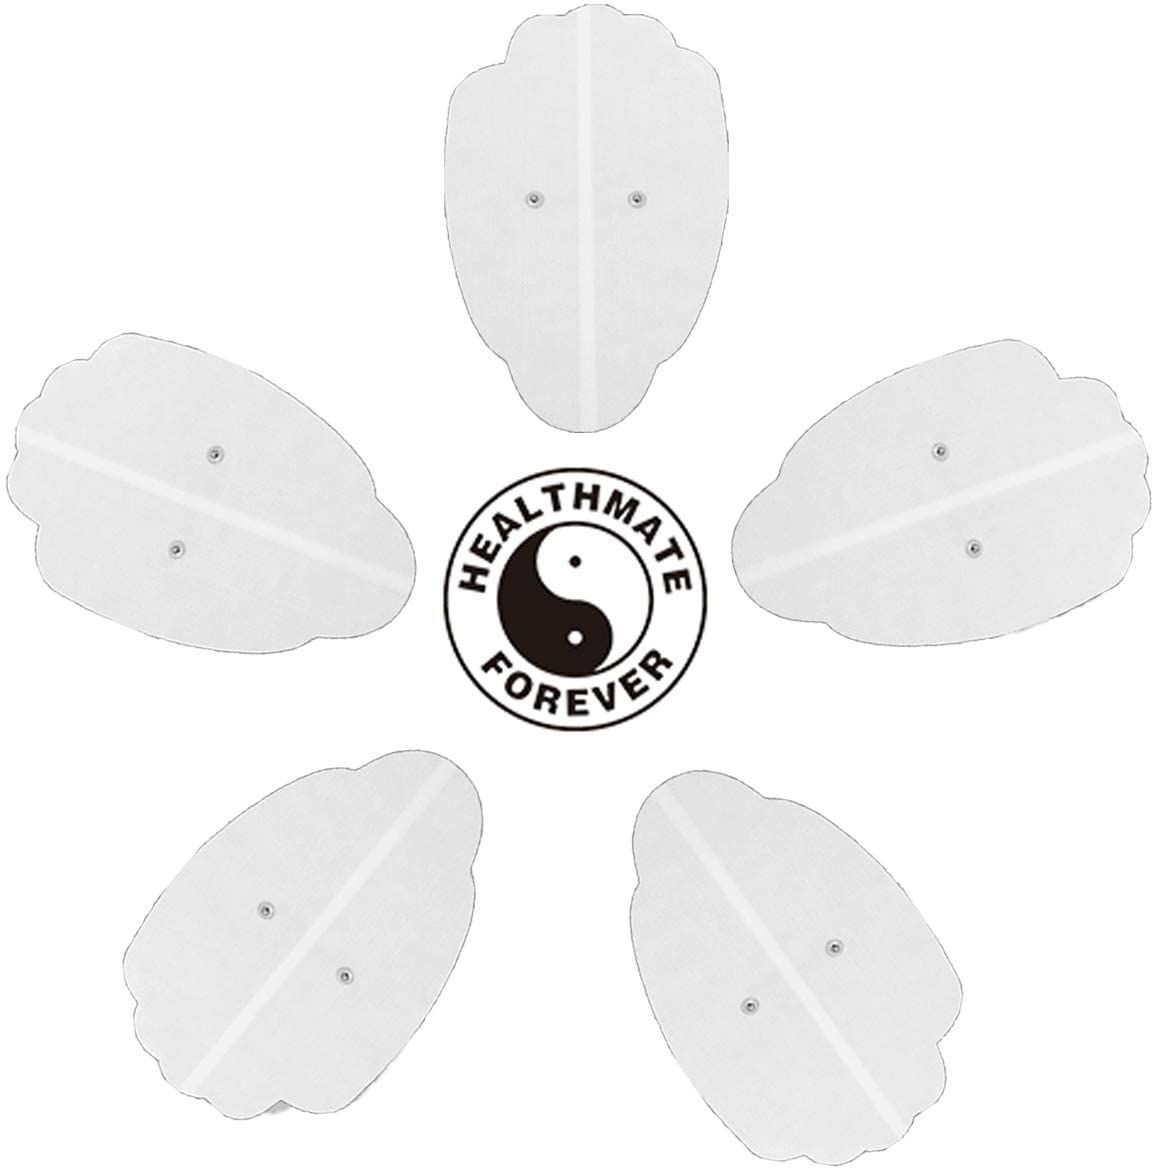 "5 Pcs White Snap-on XXL Hand-Shaped Electrode Patches Pads:  8.75""L x 5.5""W - HealthmateForever.com"